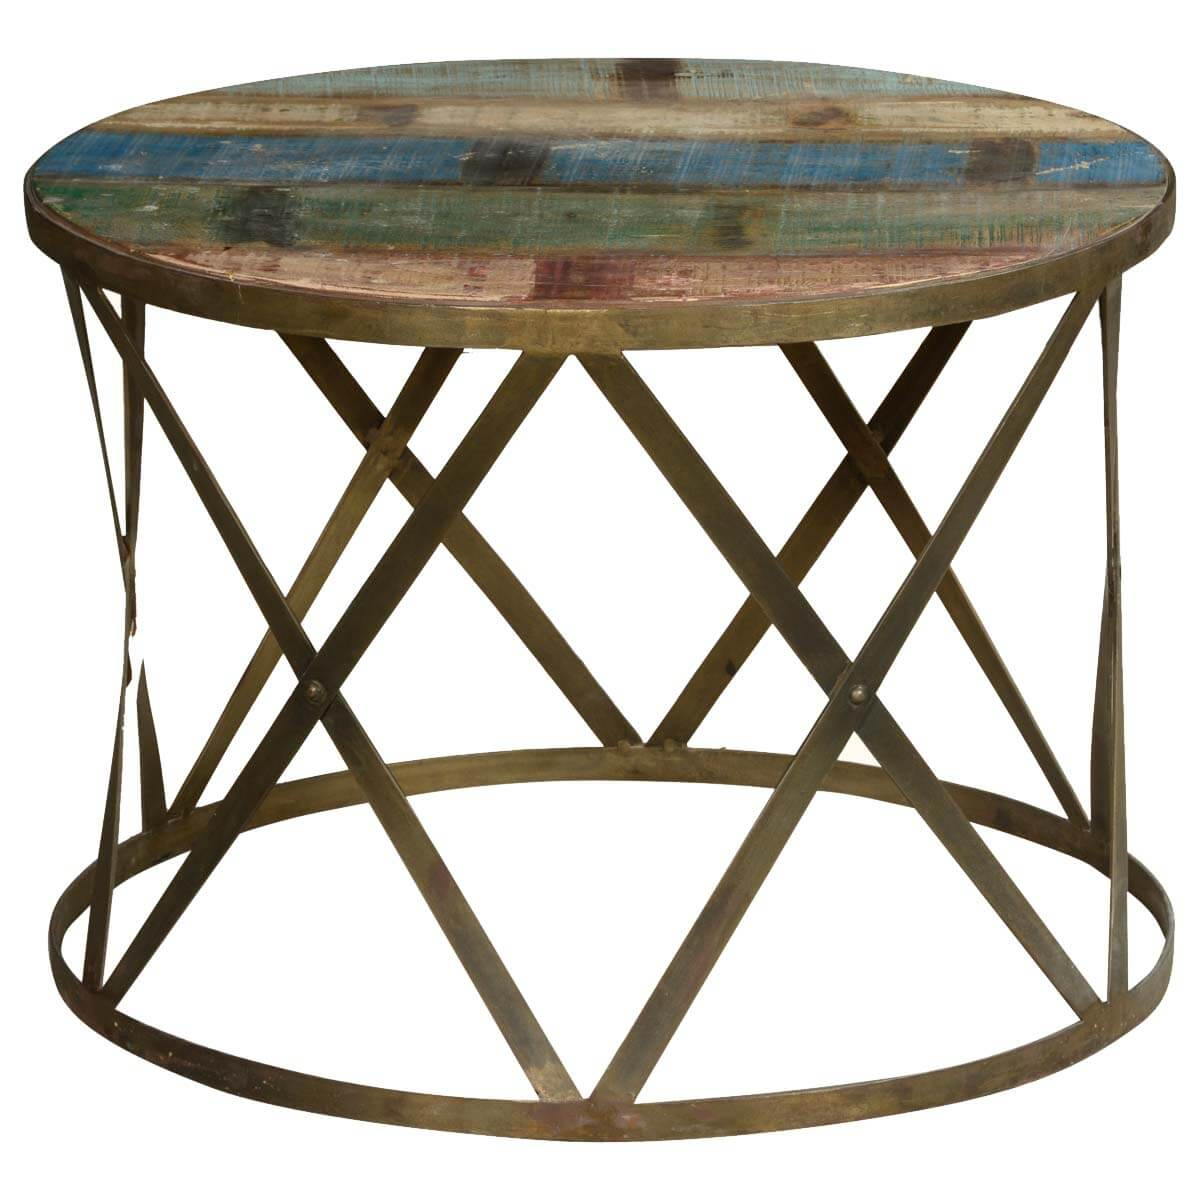 Solid Wood And Metal Coffee Table: Retro Style Solid Wood And Iron Round Industrial Coffee Table